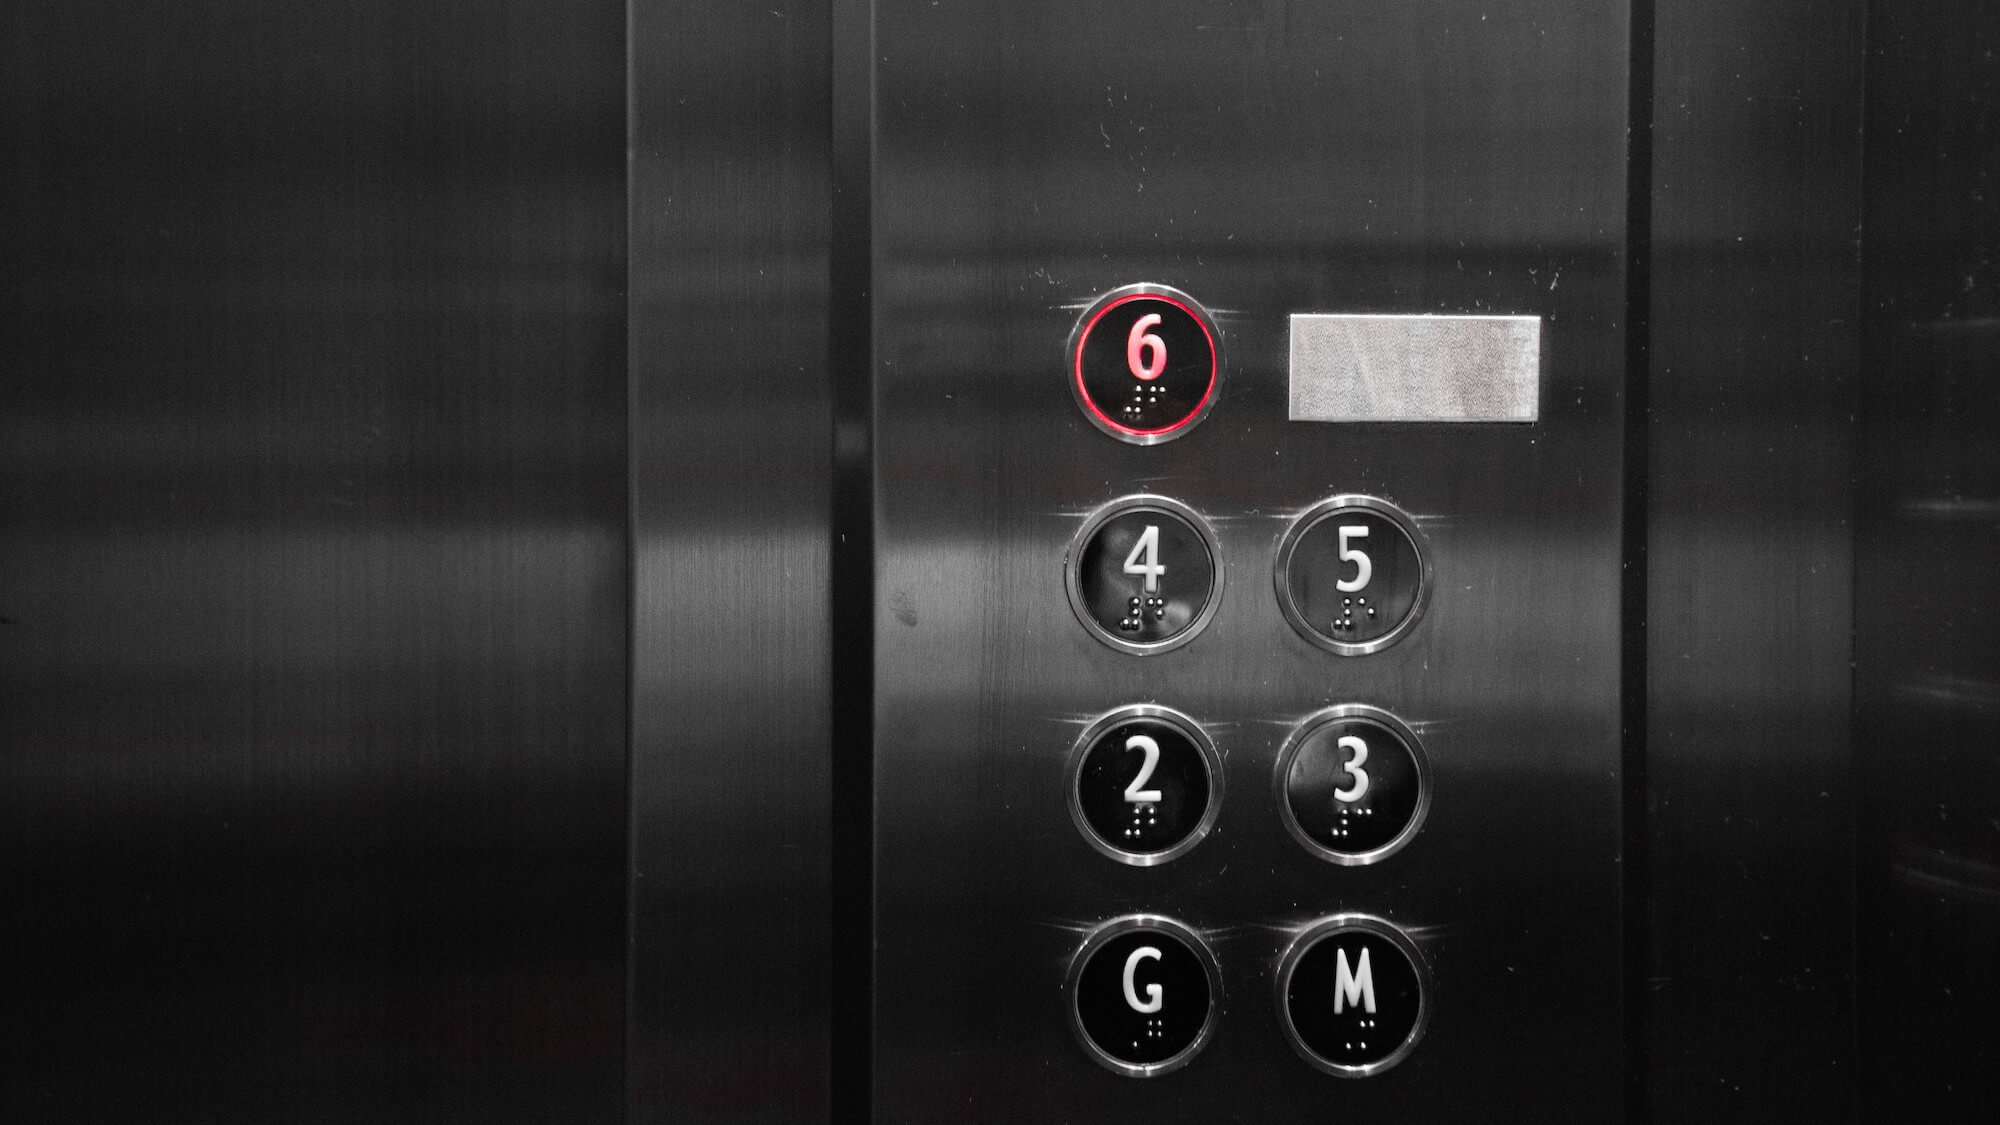 Bank of elevator buttons G, M, 2–6 with braille, 6th floor is lit up